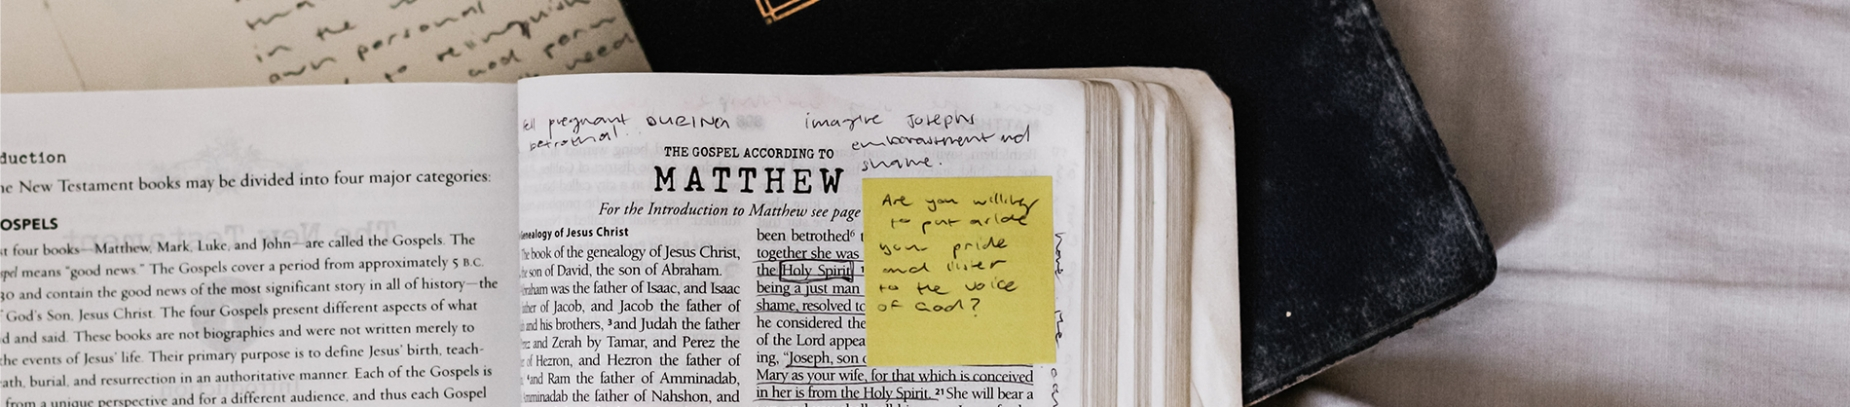 Open bible with notes and post-it note stuck on the page